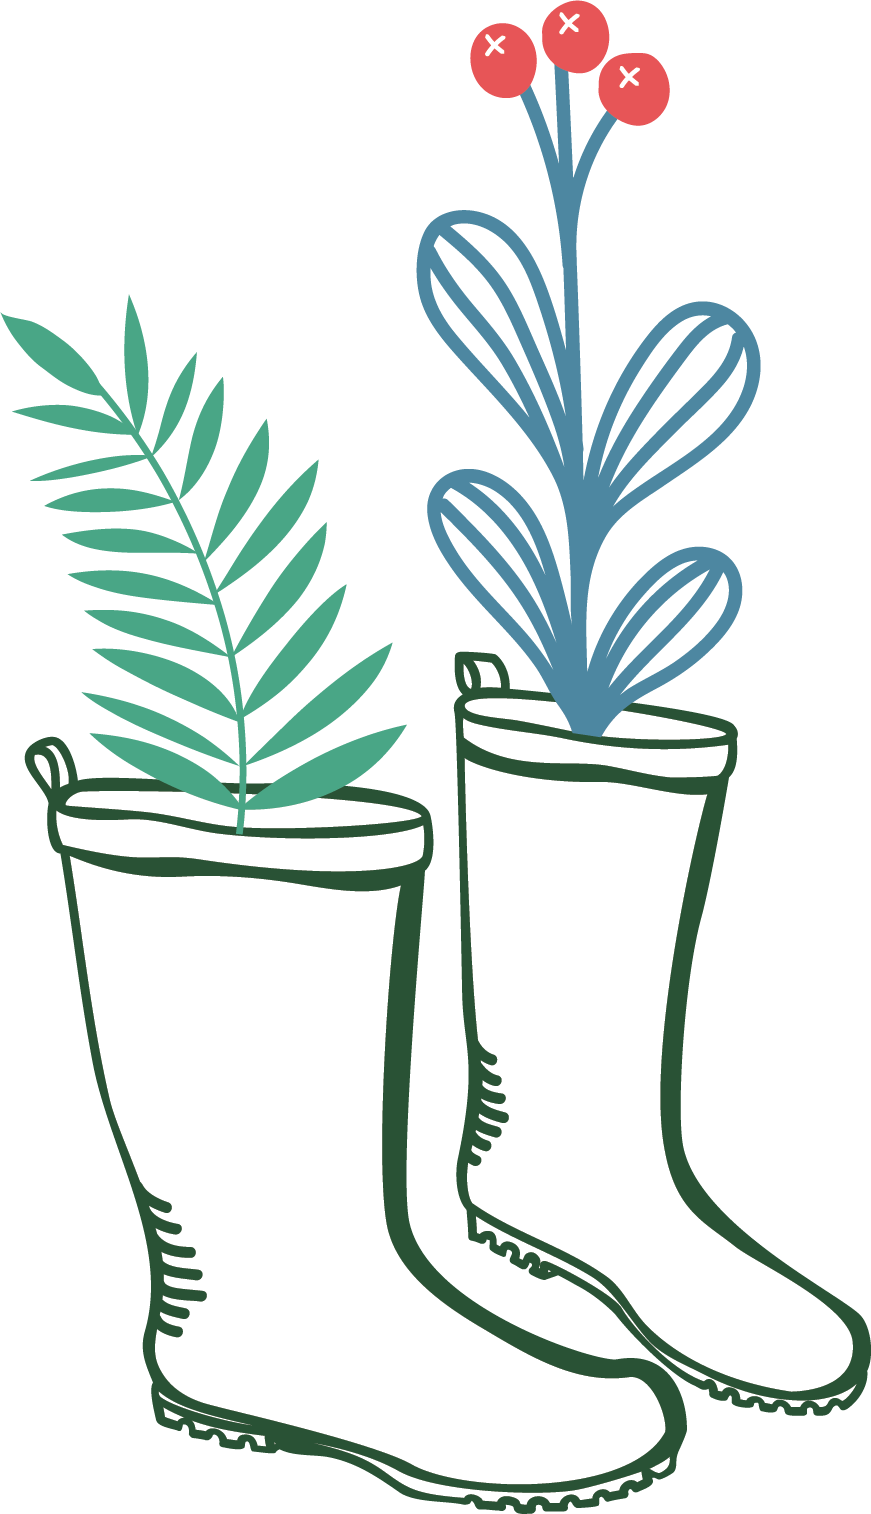 Illustration of Gardening Boots with Some Sprigs Sticking Out